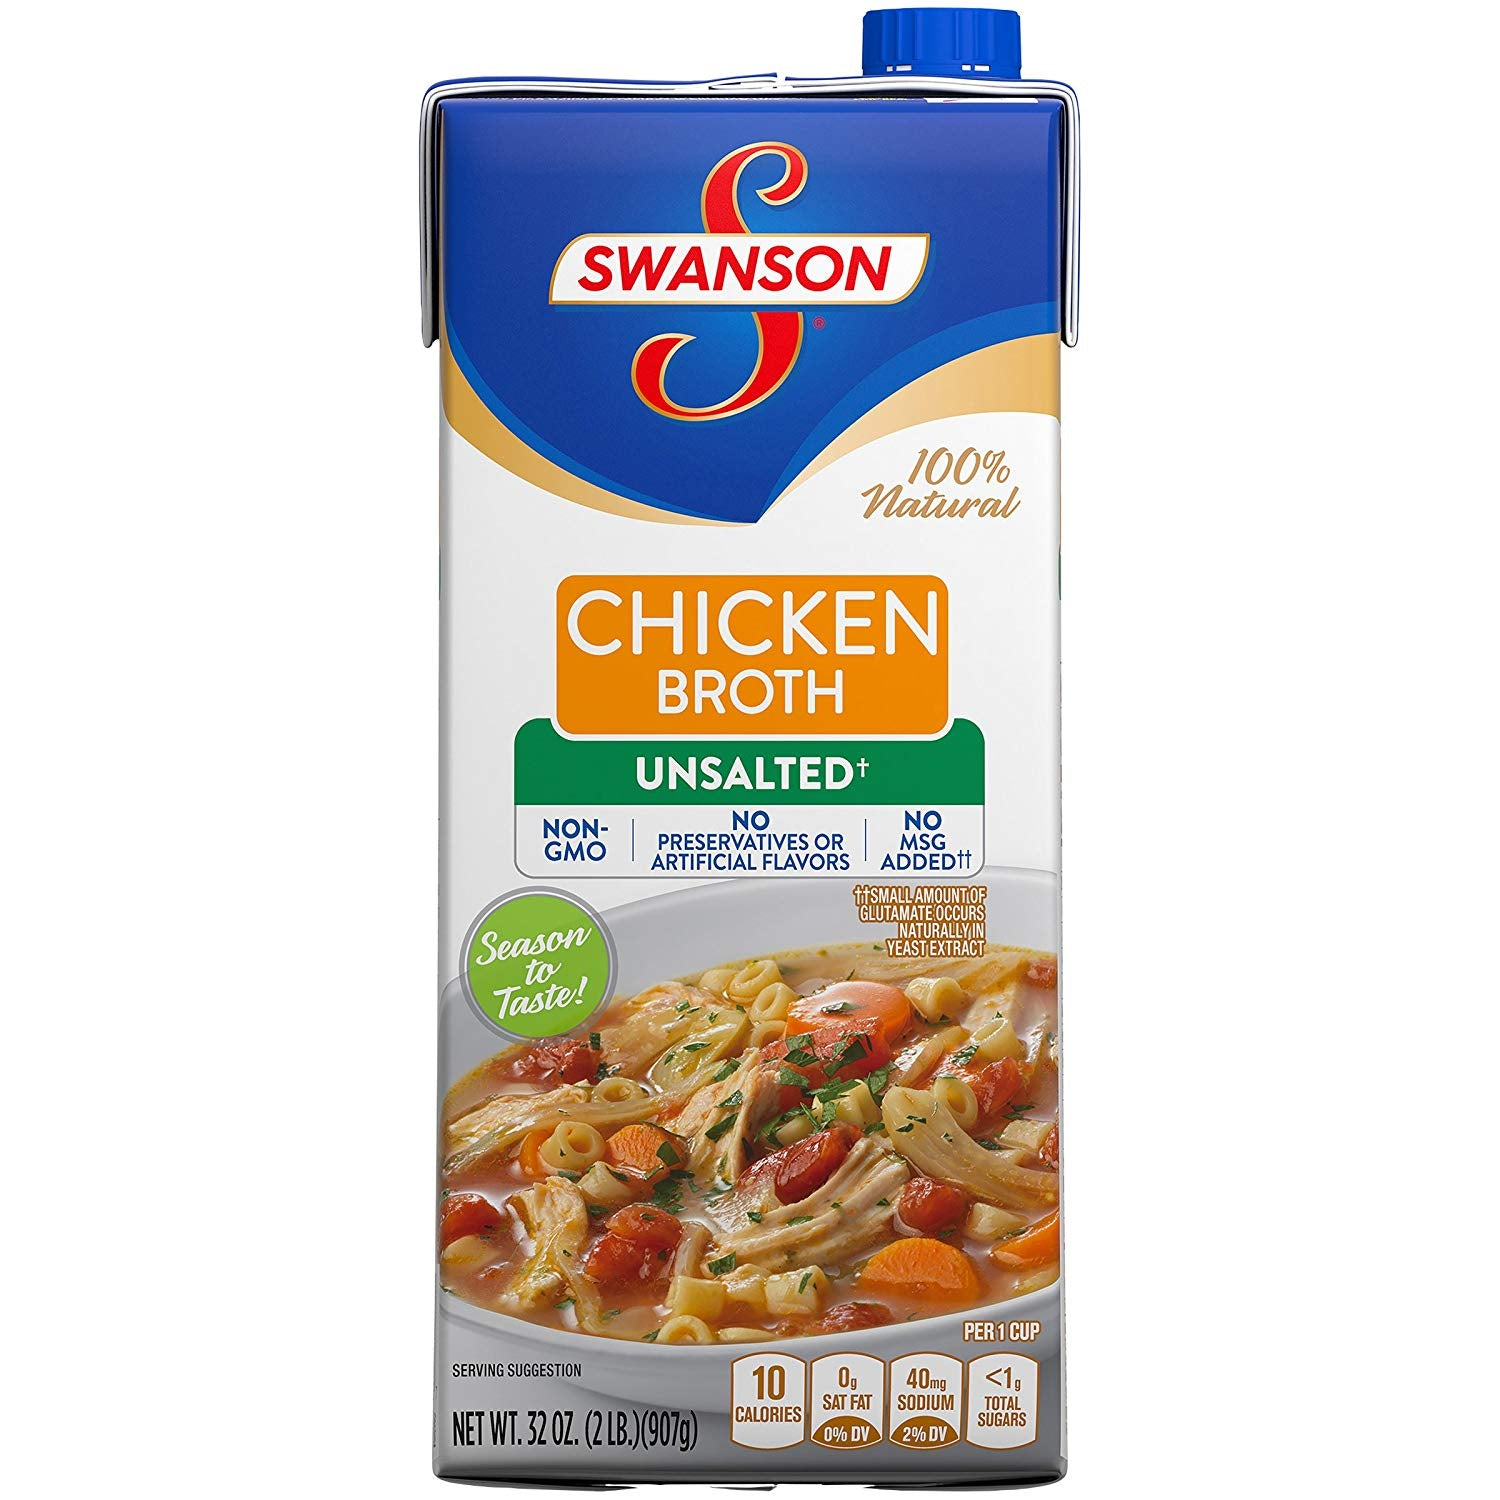 SWANSON UNSALTED CHICKEN BROTH 32 oz